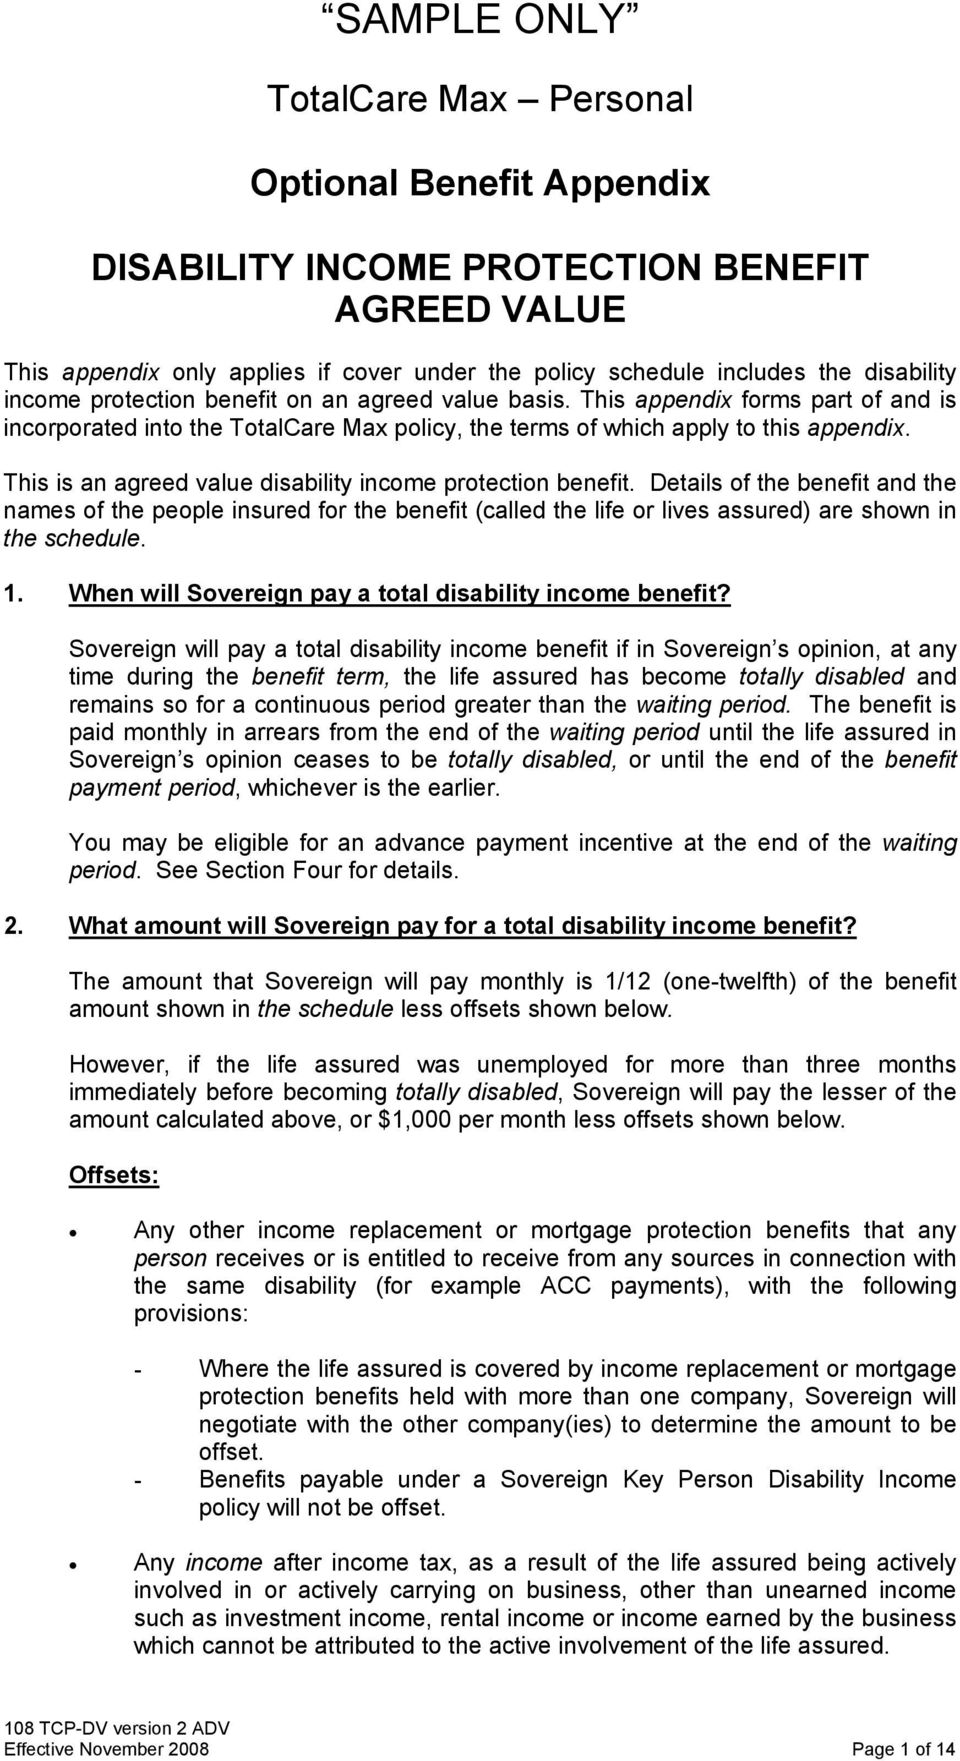 This is an agreed value disability income protection benefit. Details of the benefit and the names of the people insured for the benefit (called the life or lives assured) are shown in the schedule.